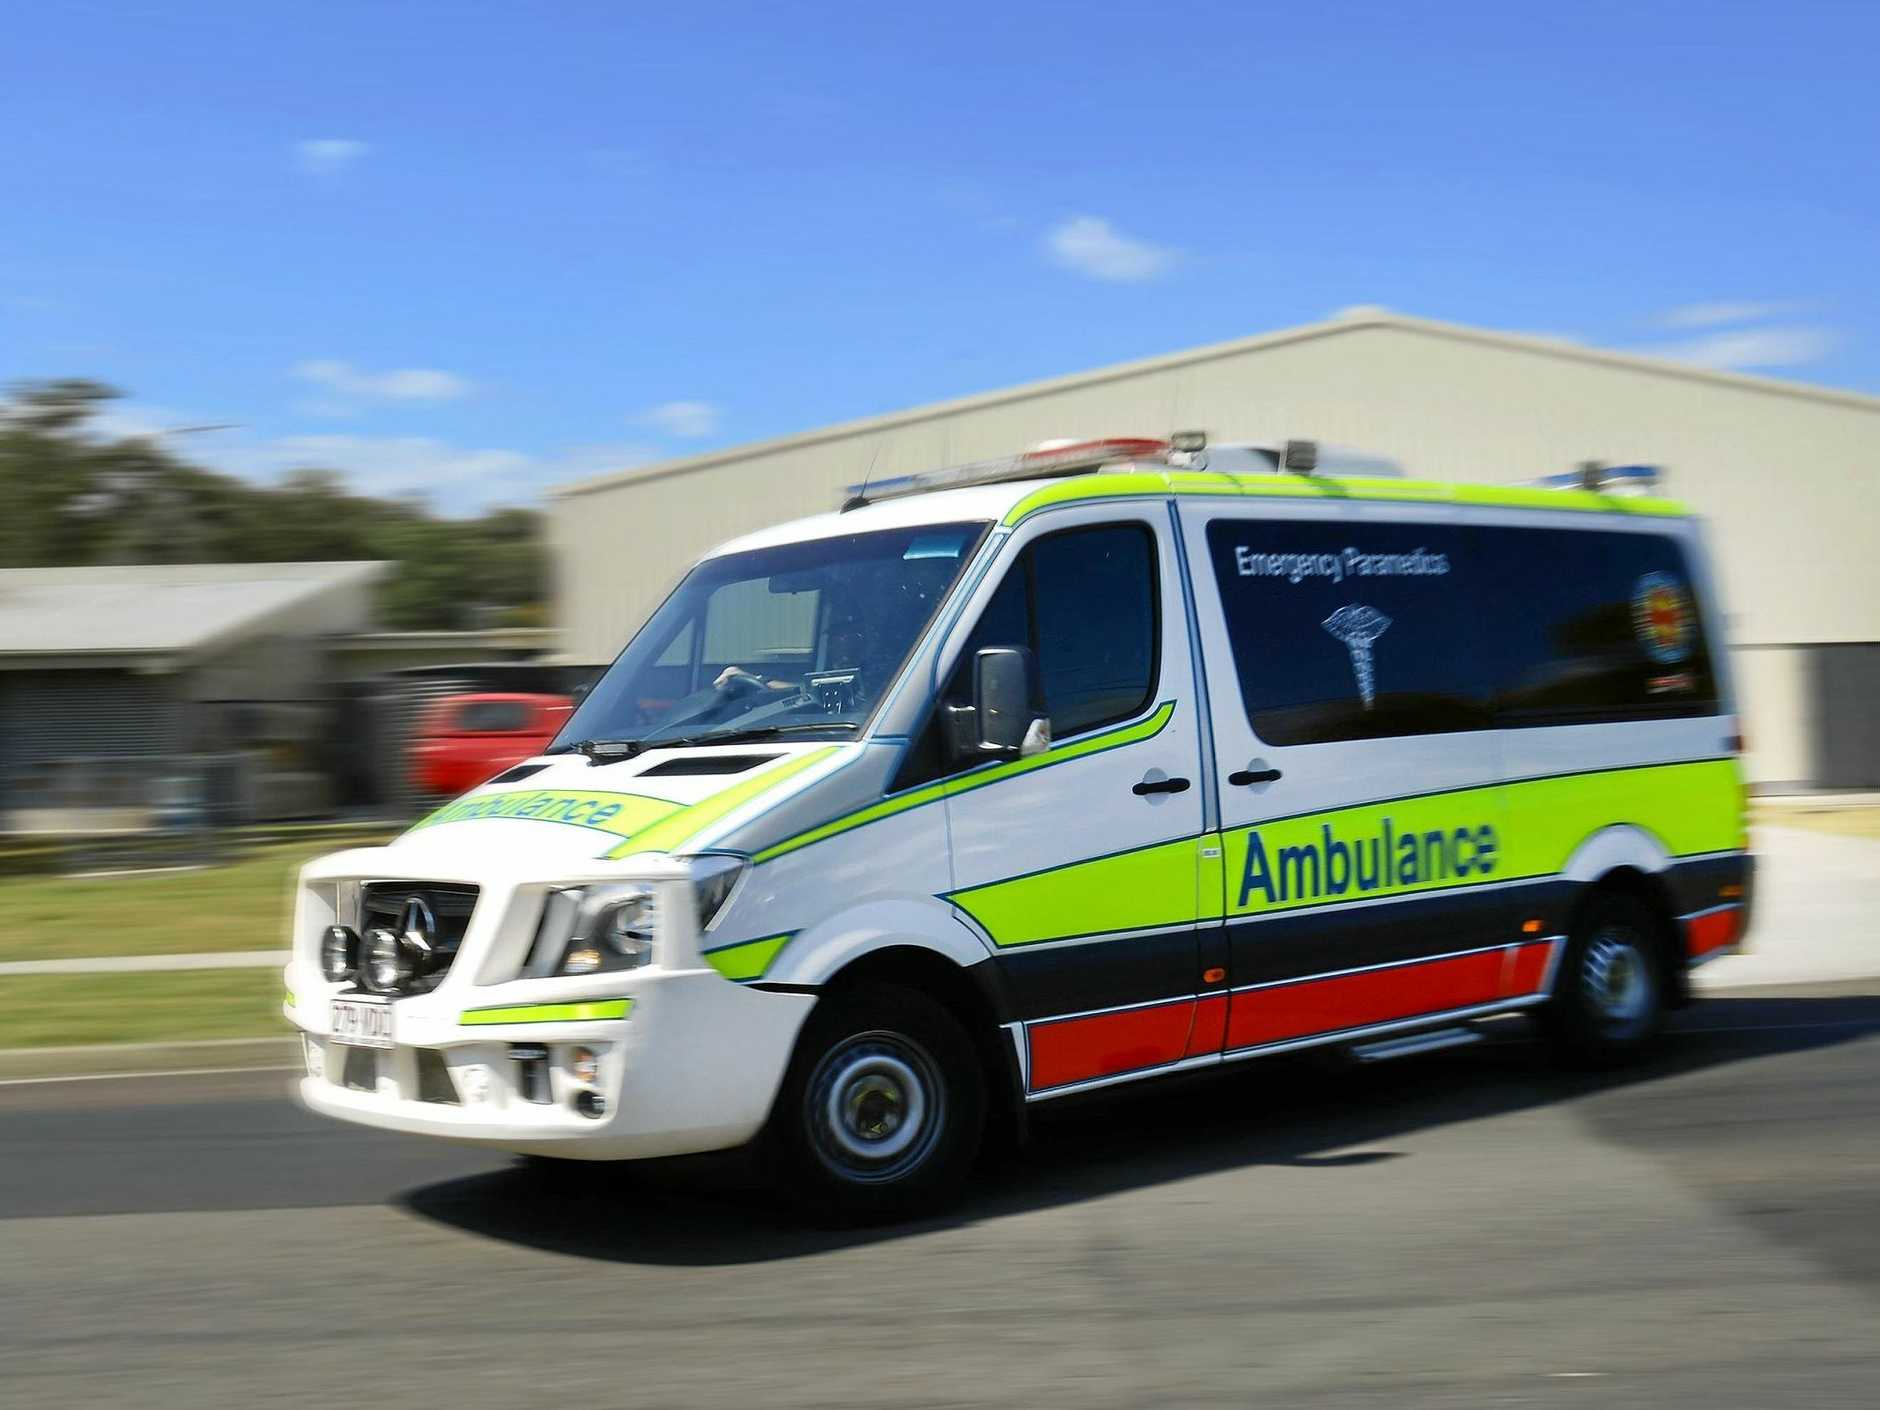 One person was taken to hospital in a serious condition after they fell from a ladder at Alexandra Headland yesterday evening.